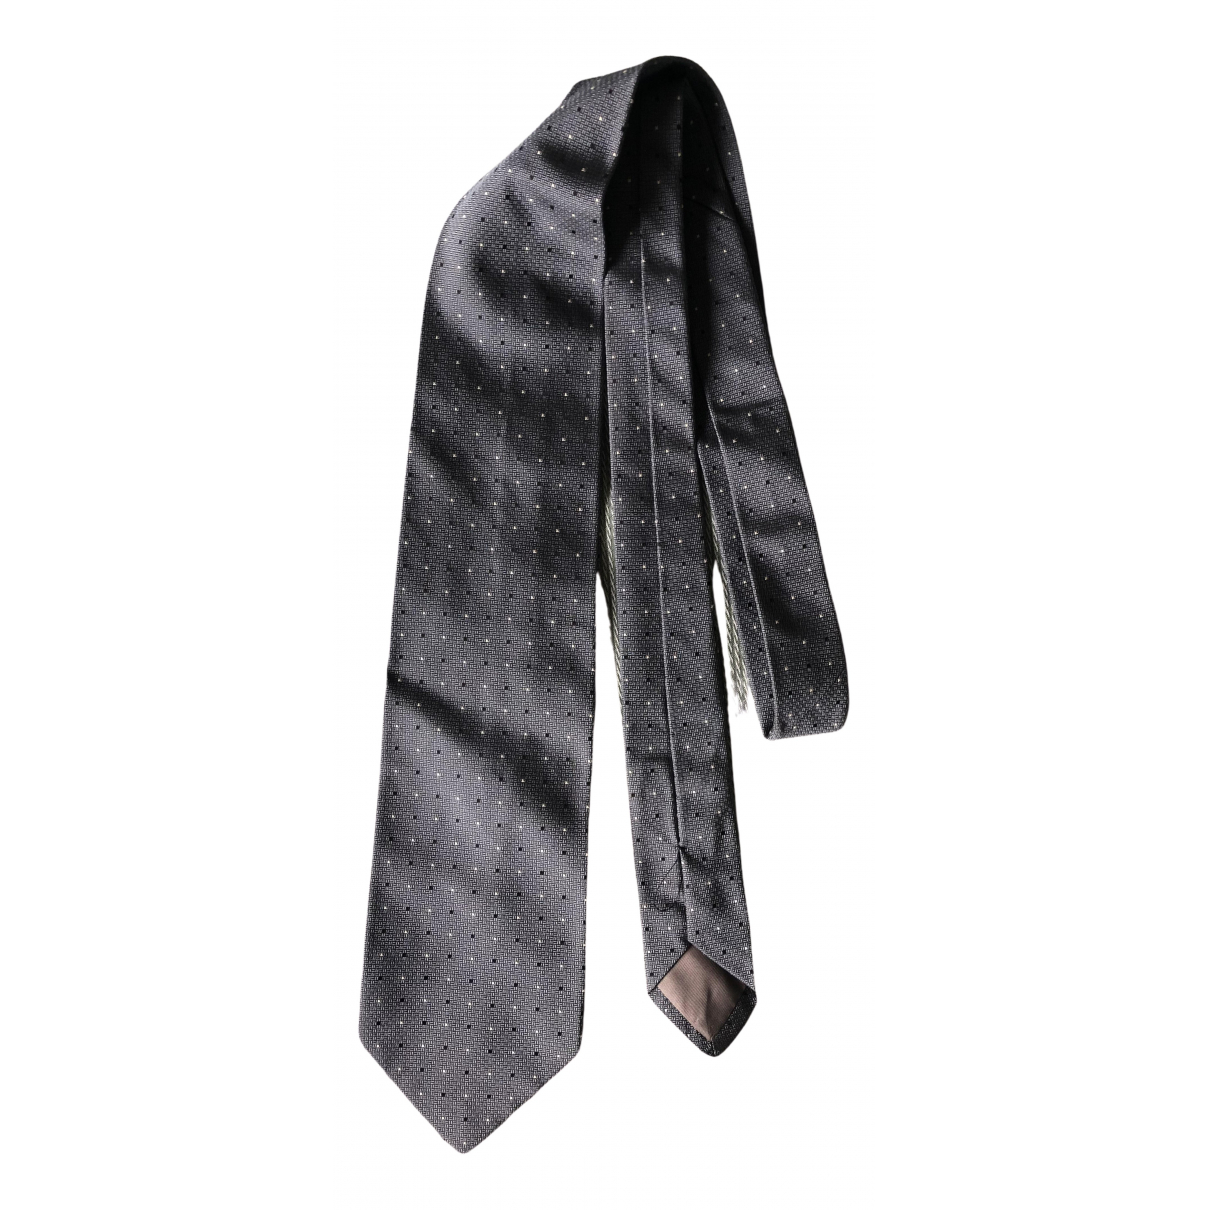 Giorgio Armani N Grey Silk Ties for Men N